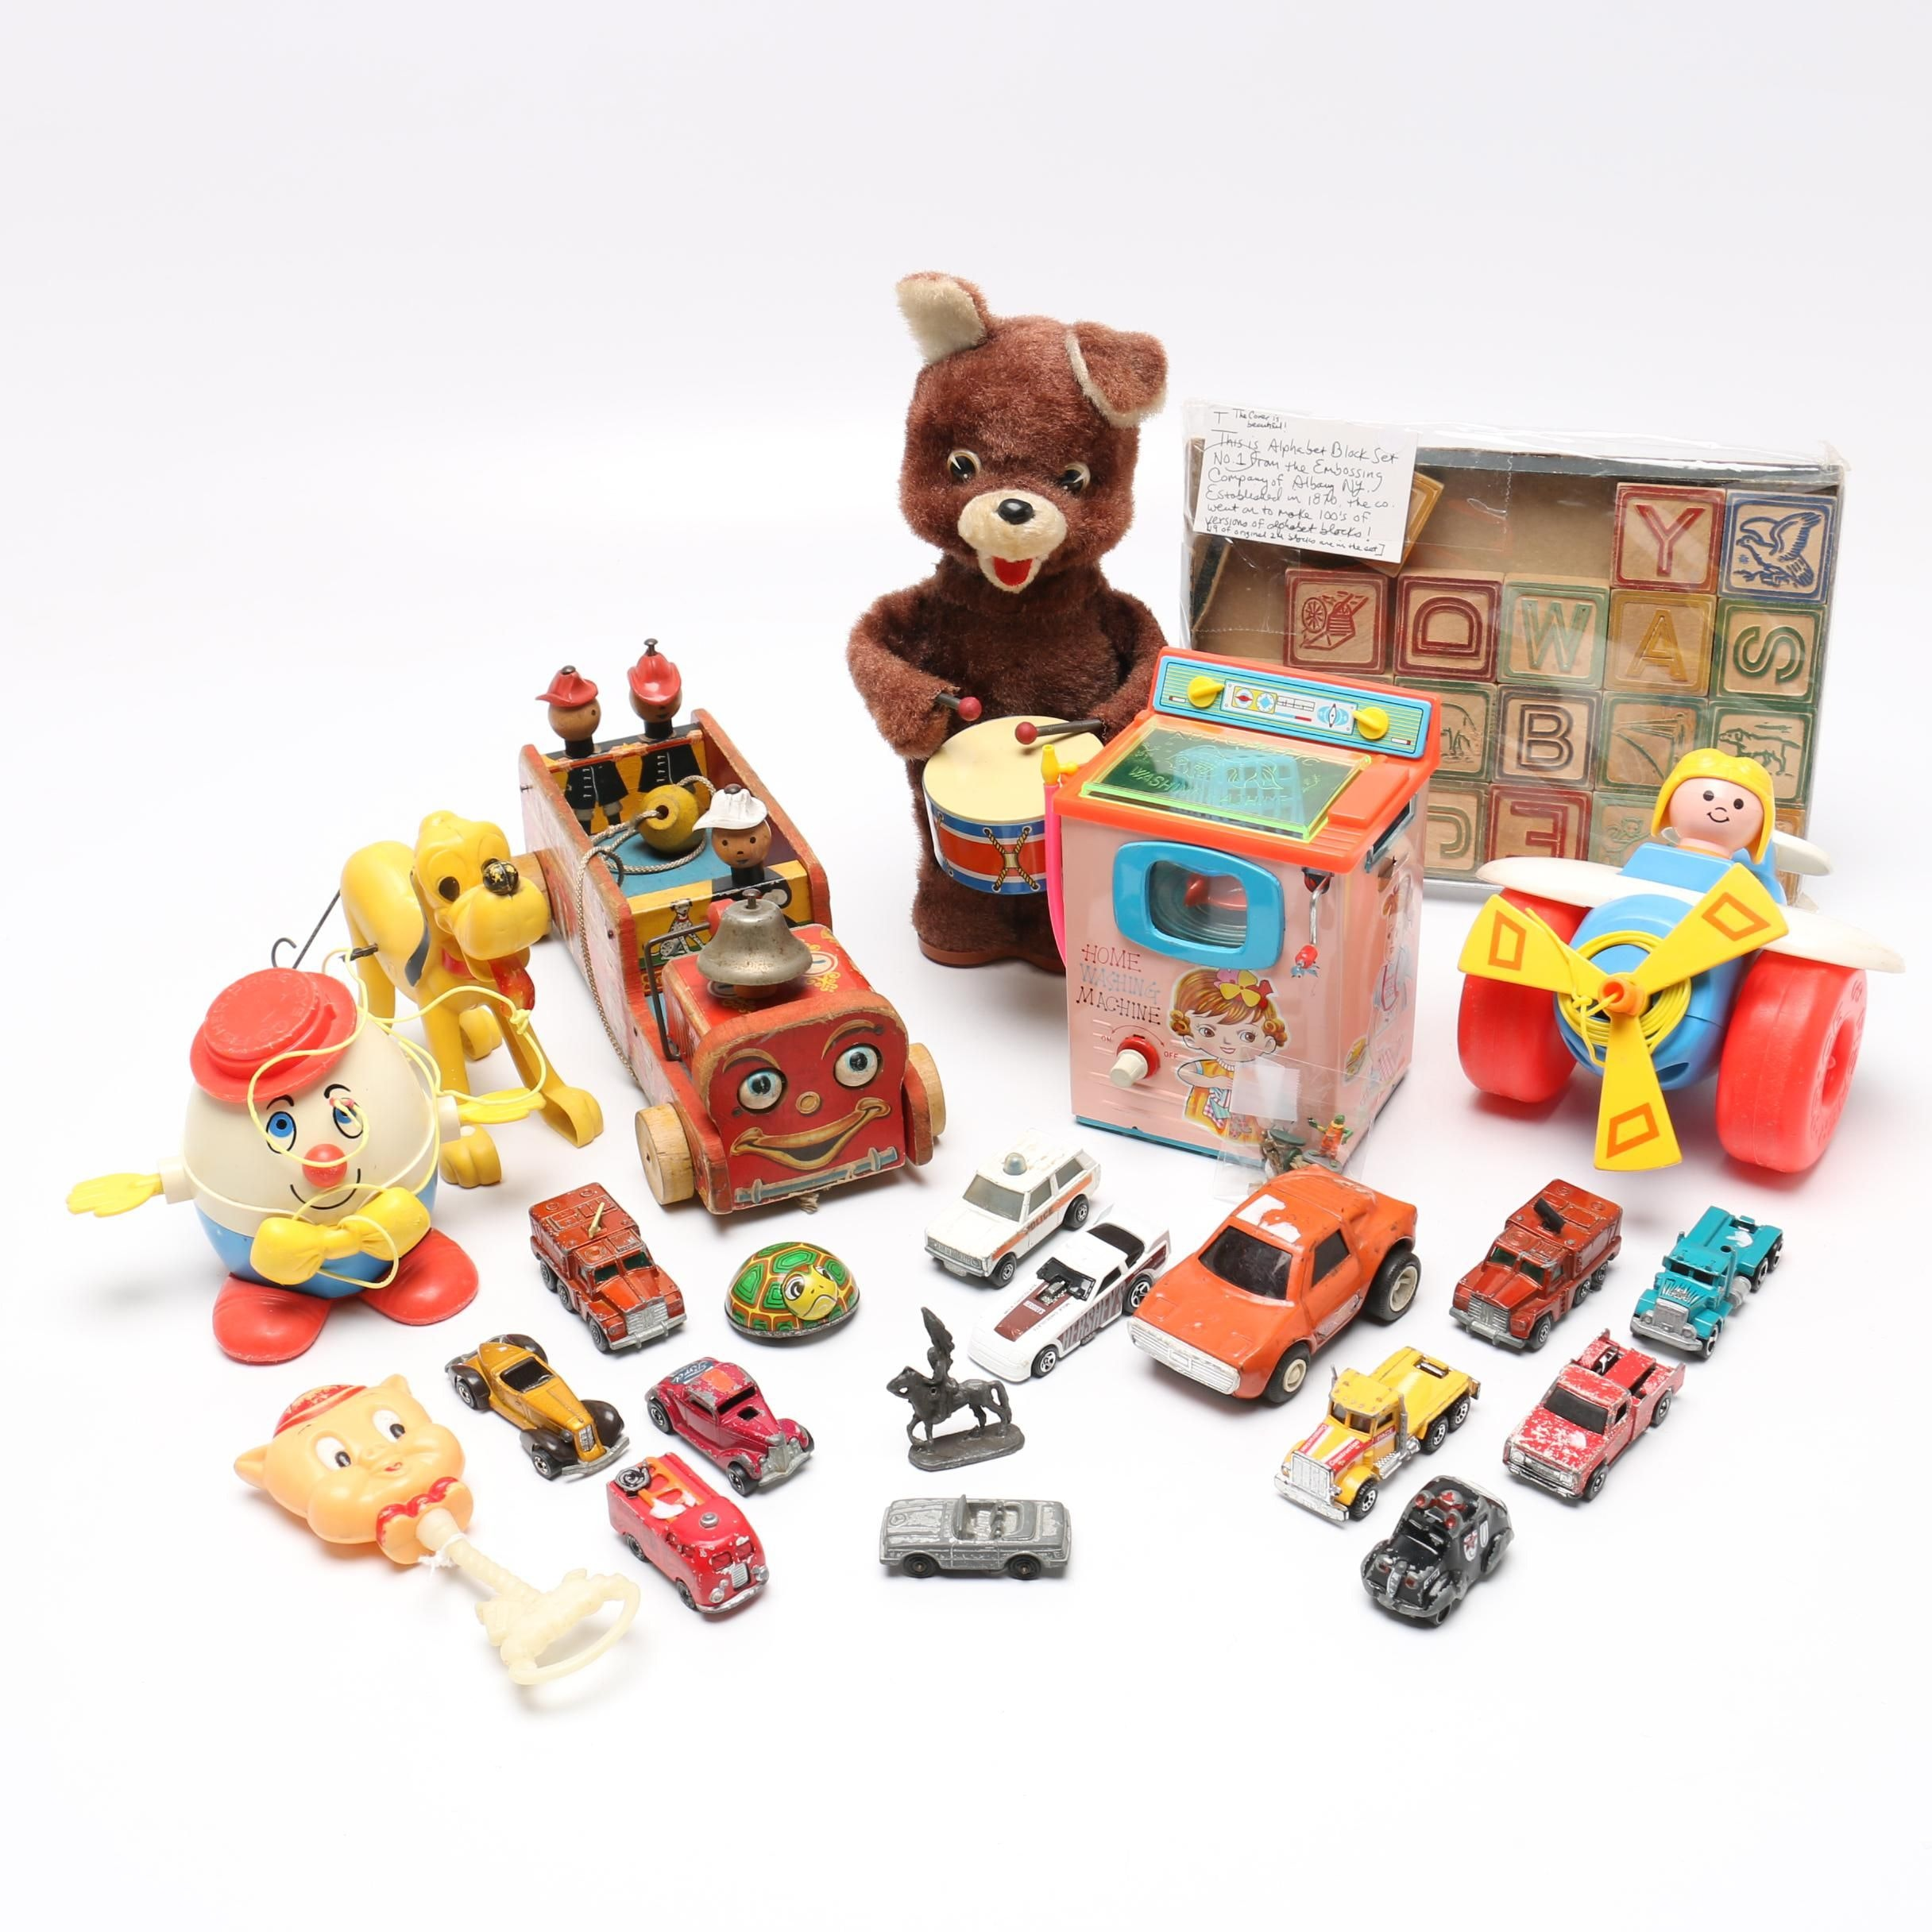 Vintage Toys Including Fisher-Price